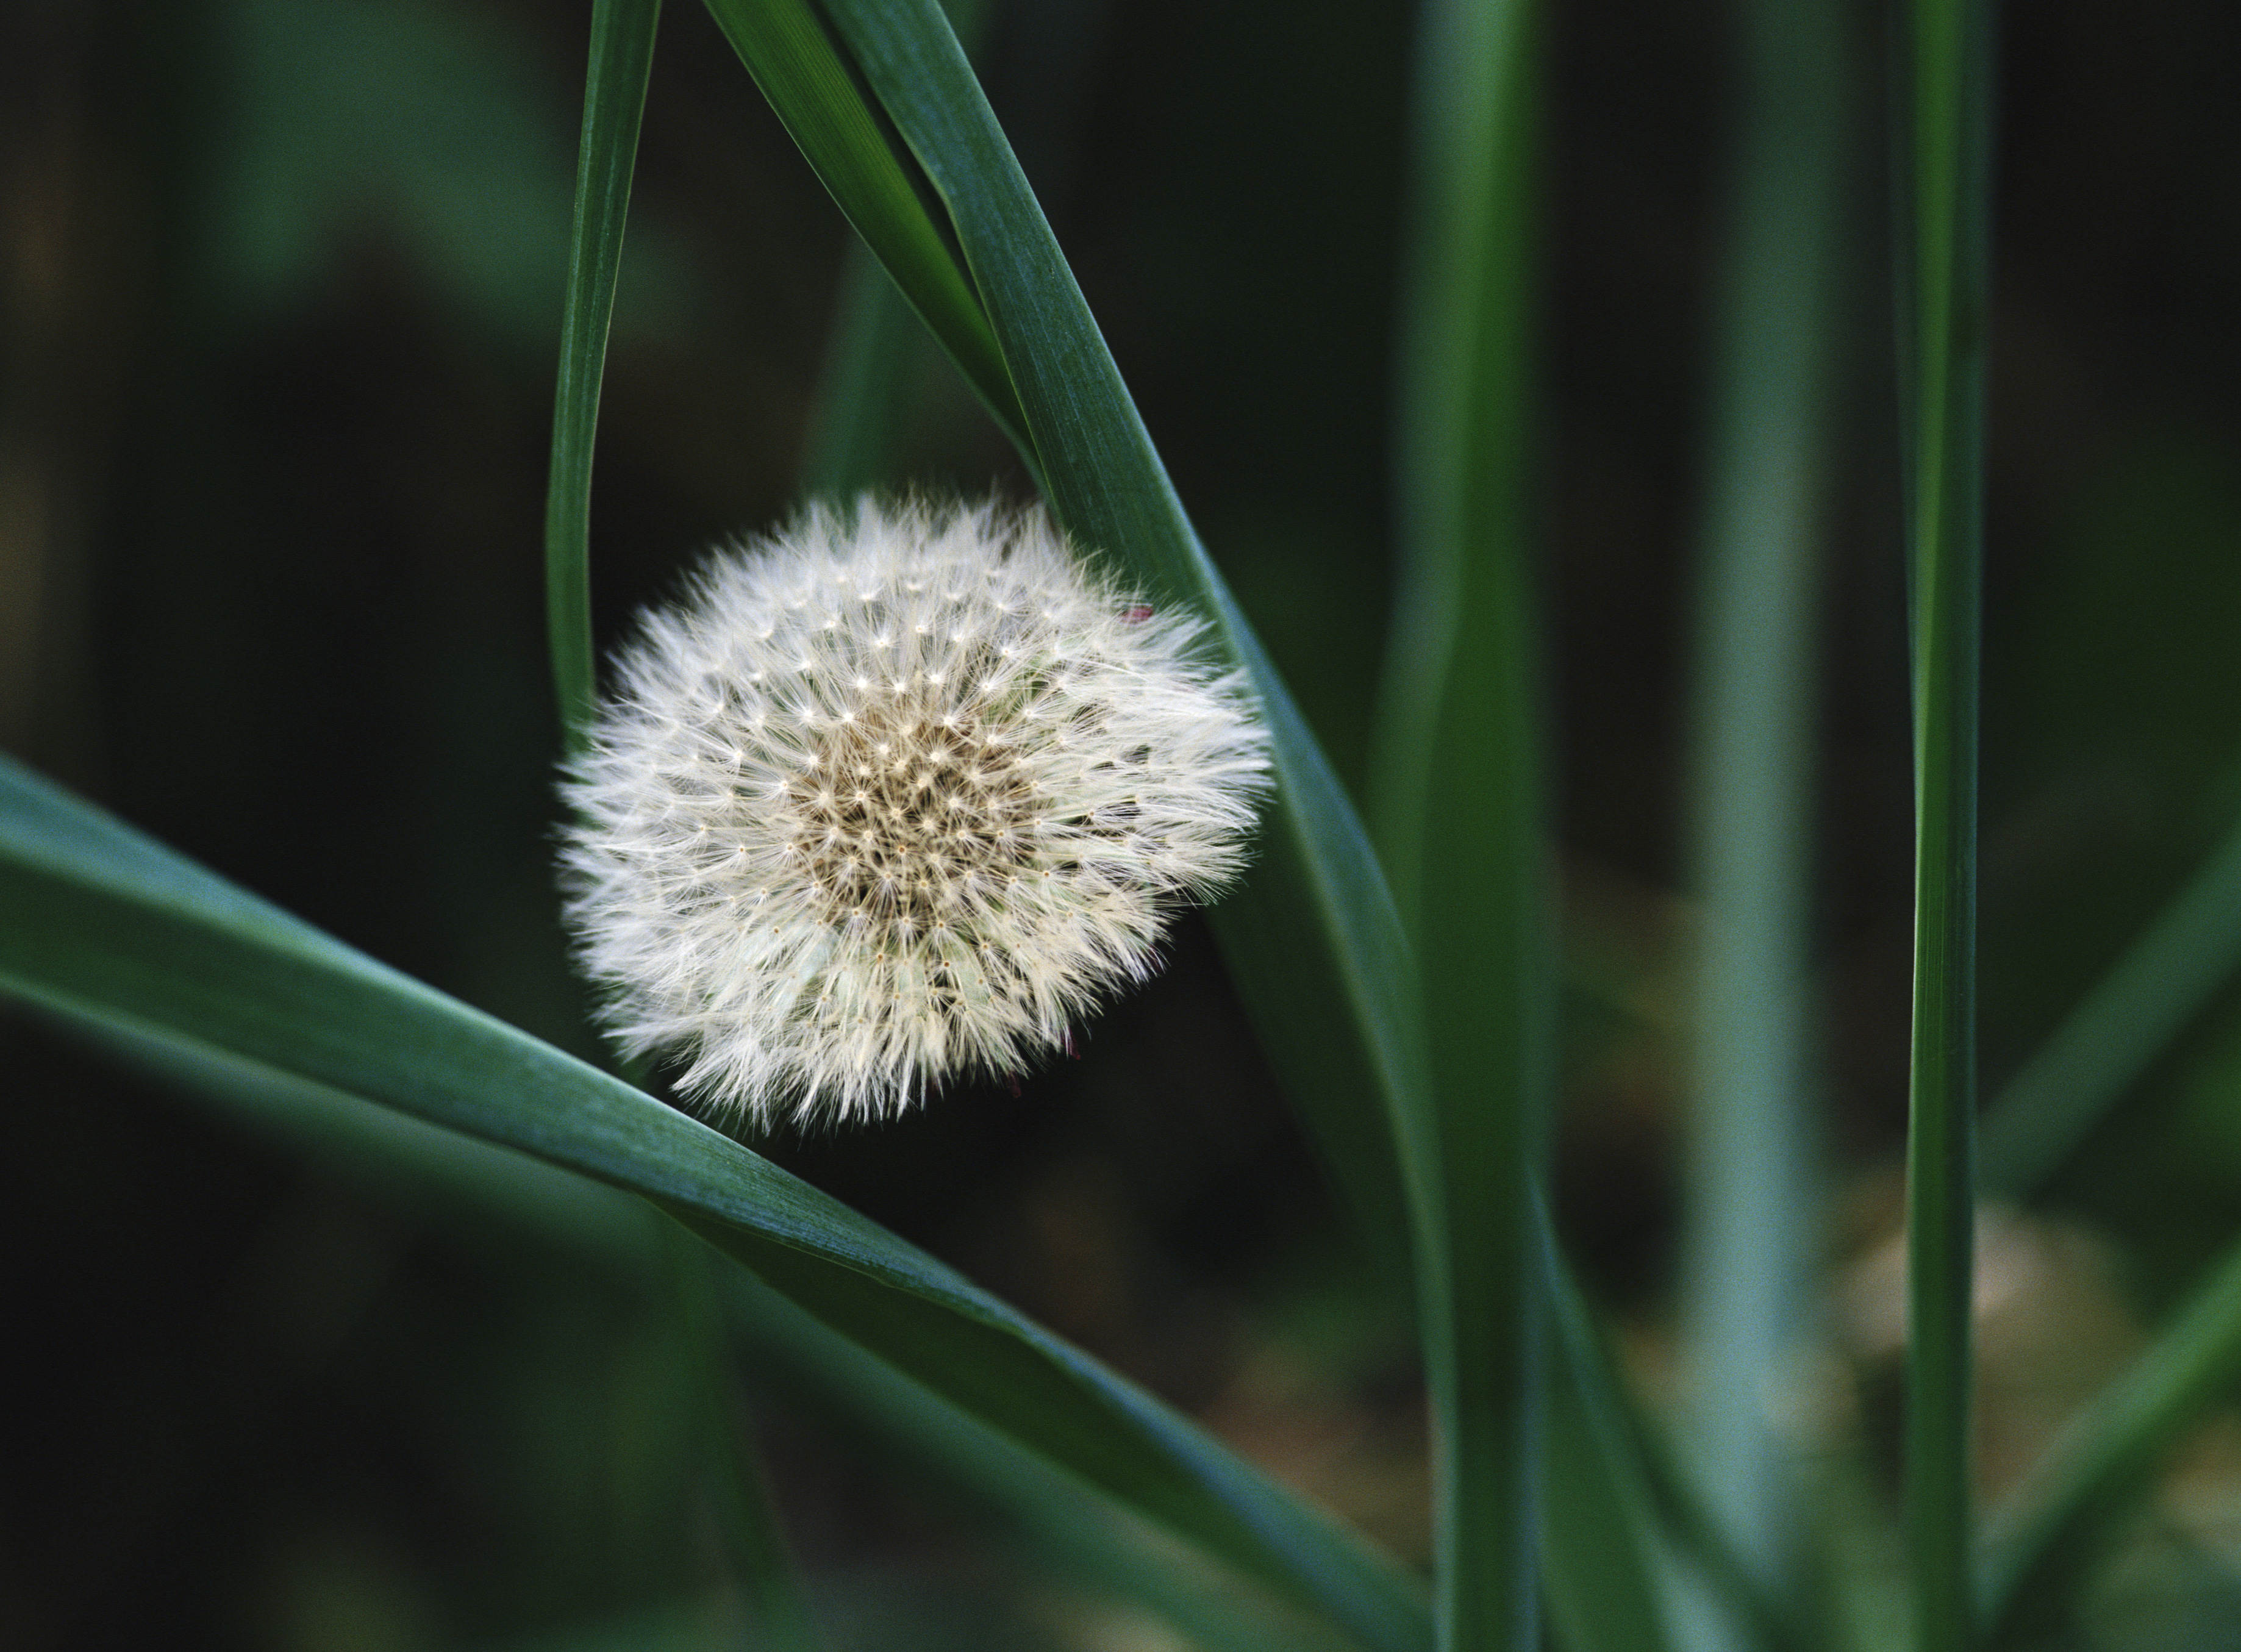 dandelion wallpapers and images   download wallpapers pictures 3675x2709